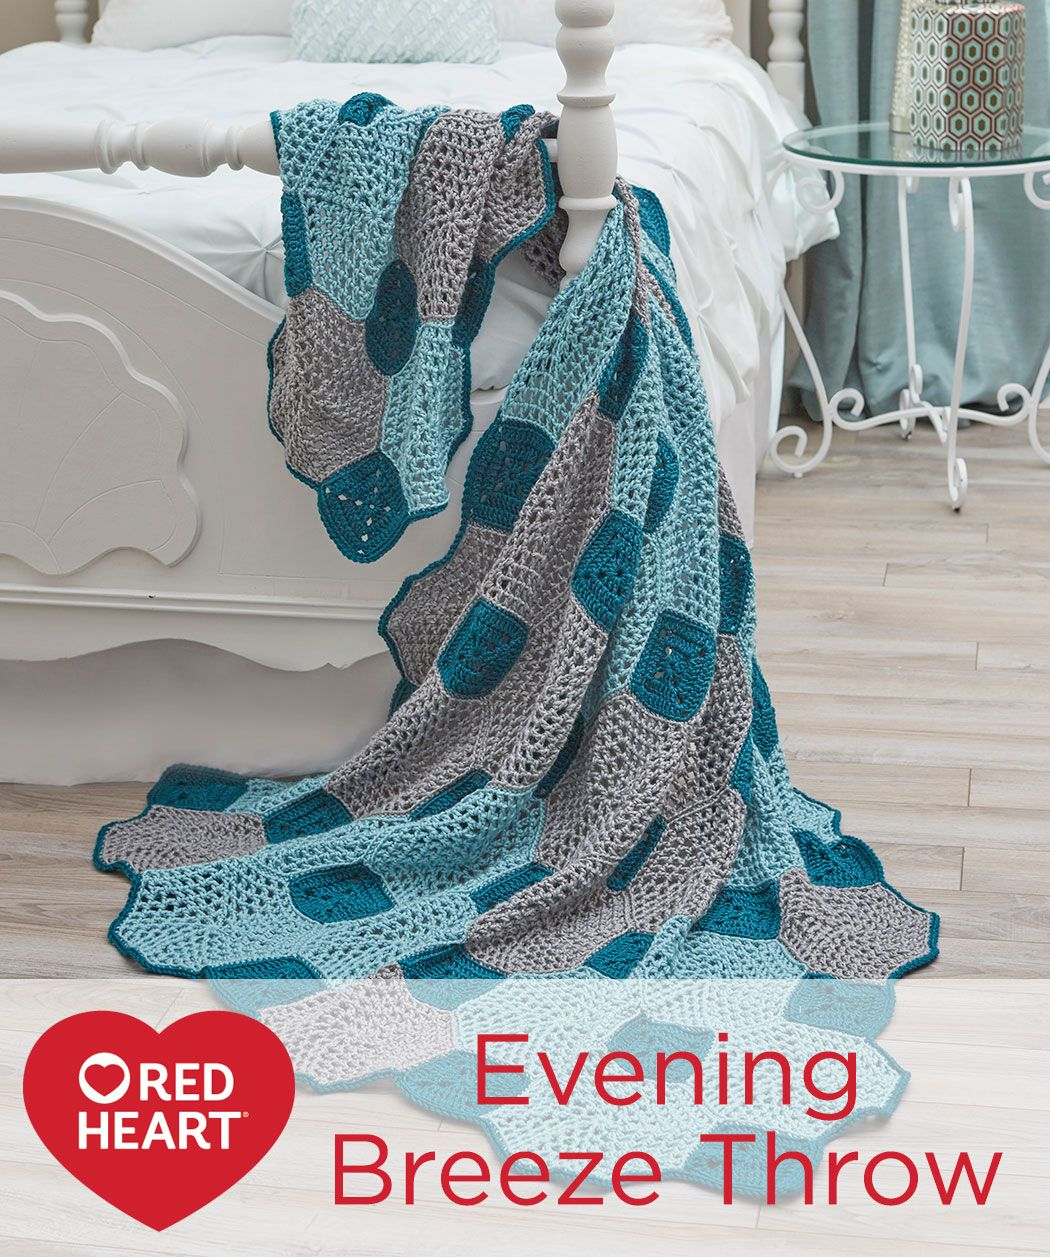 Evening Breeze Throw Free Crochet Pattern in Red Heart Yarns ...